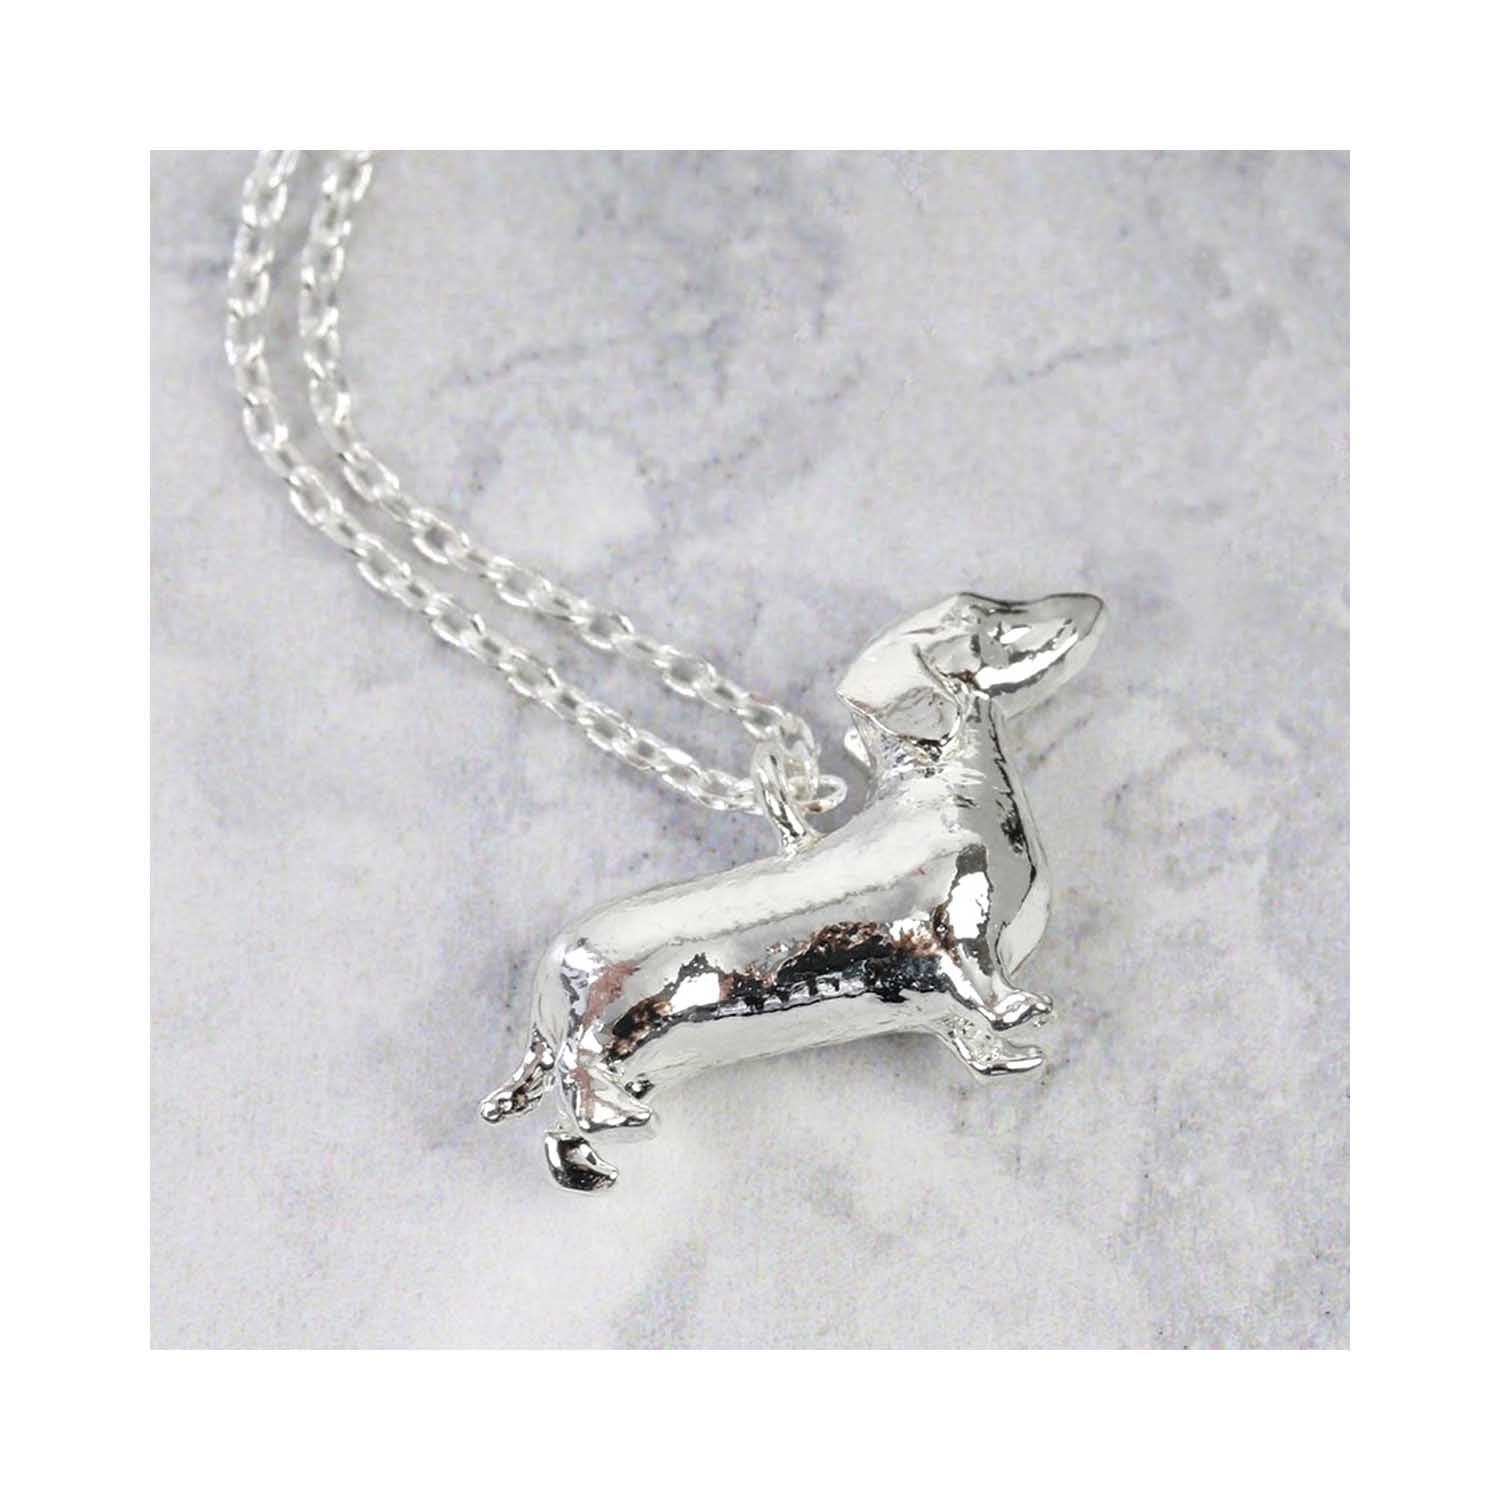 Dog Krazy Gifts - Silver Dachshund Pendant Necklace, part of the Lisa Angel range available from DogKrazyGifts.co.uk